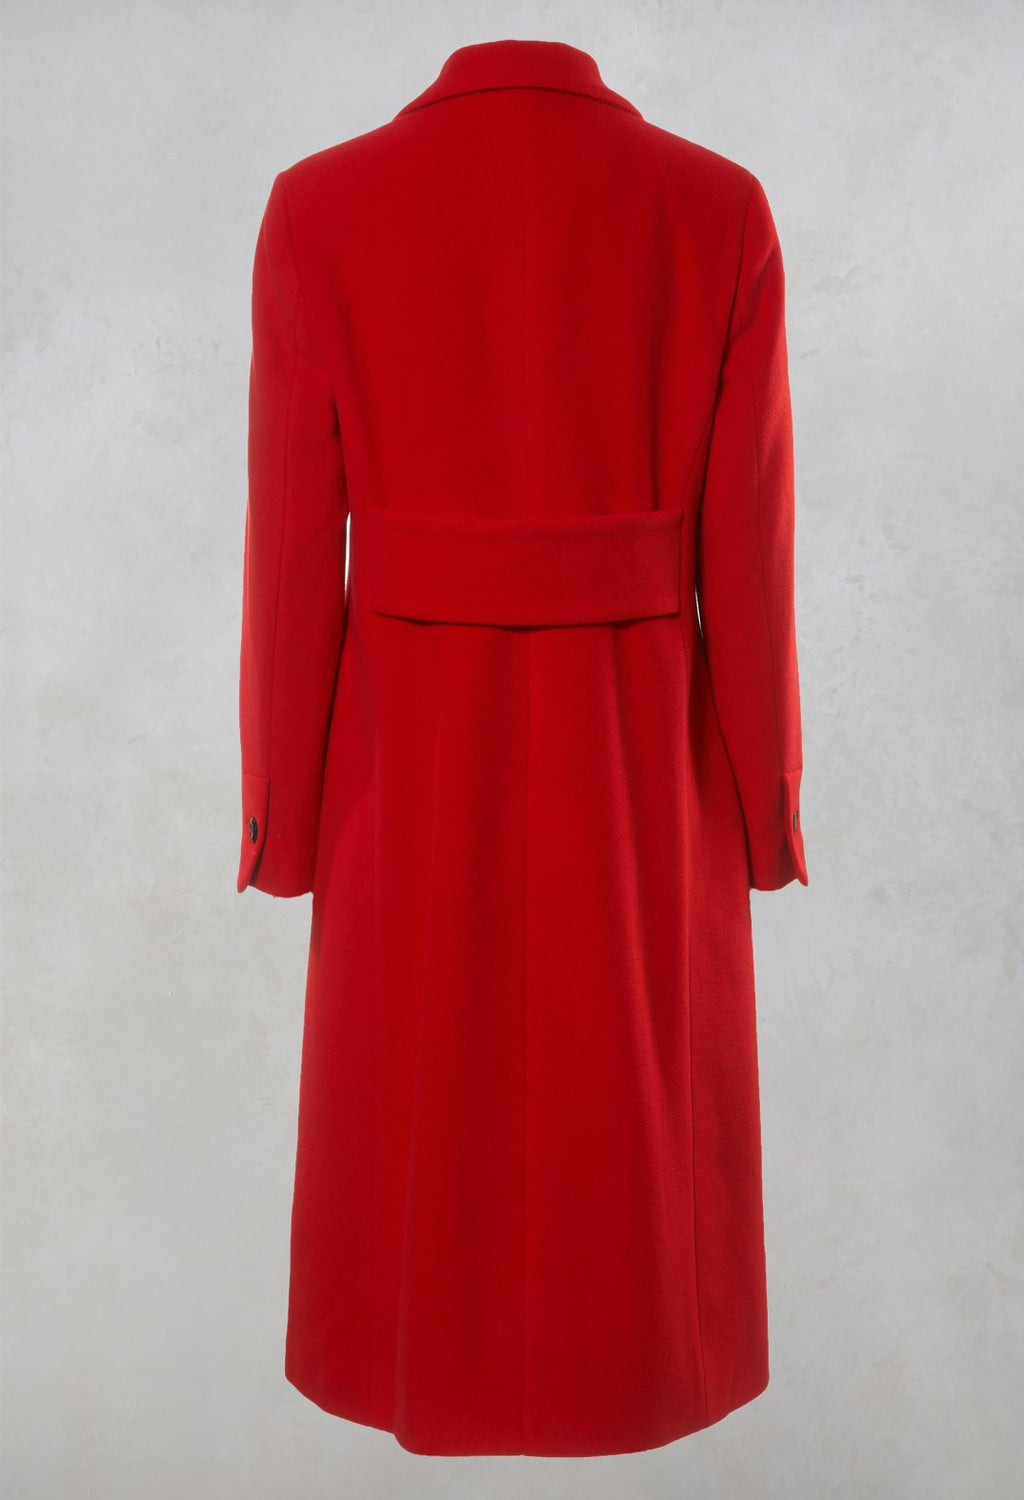 Tailored Duster Coat in Red